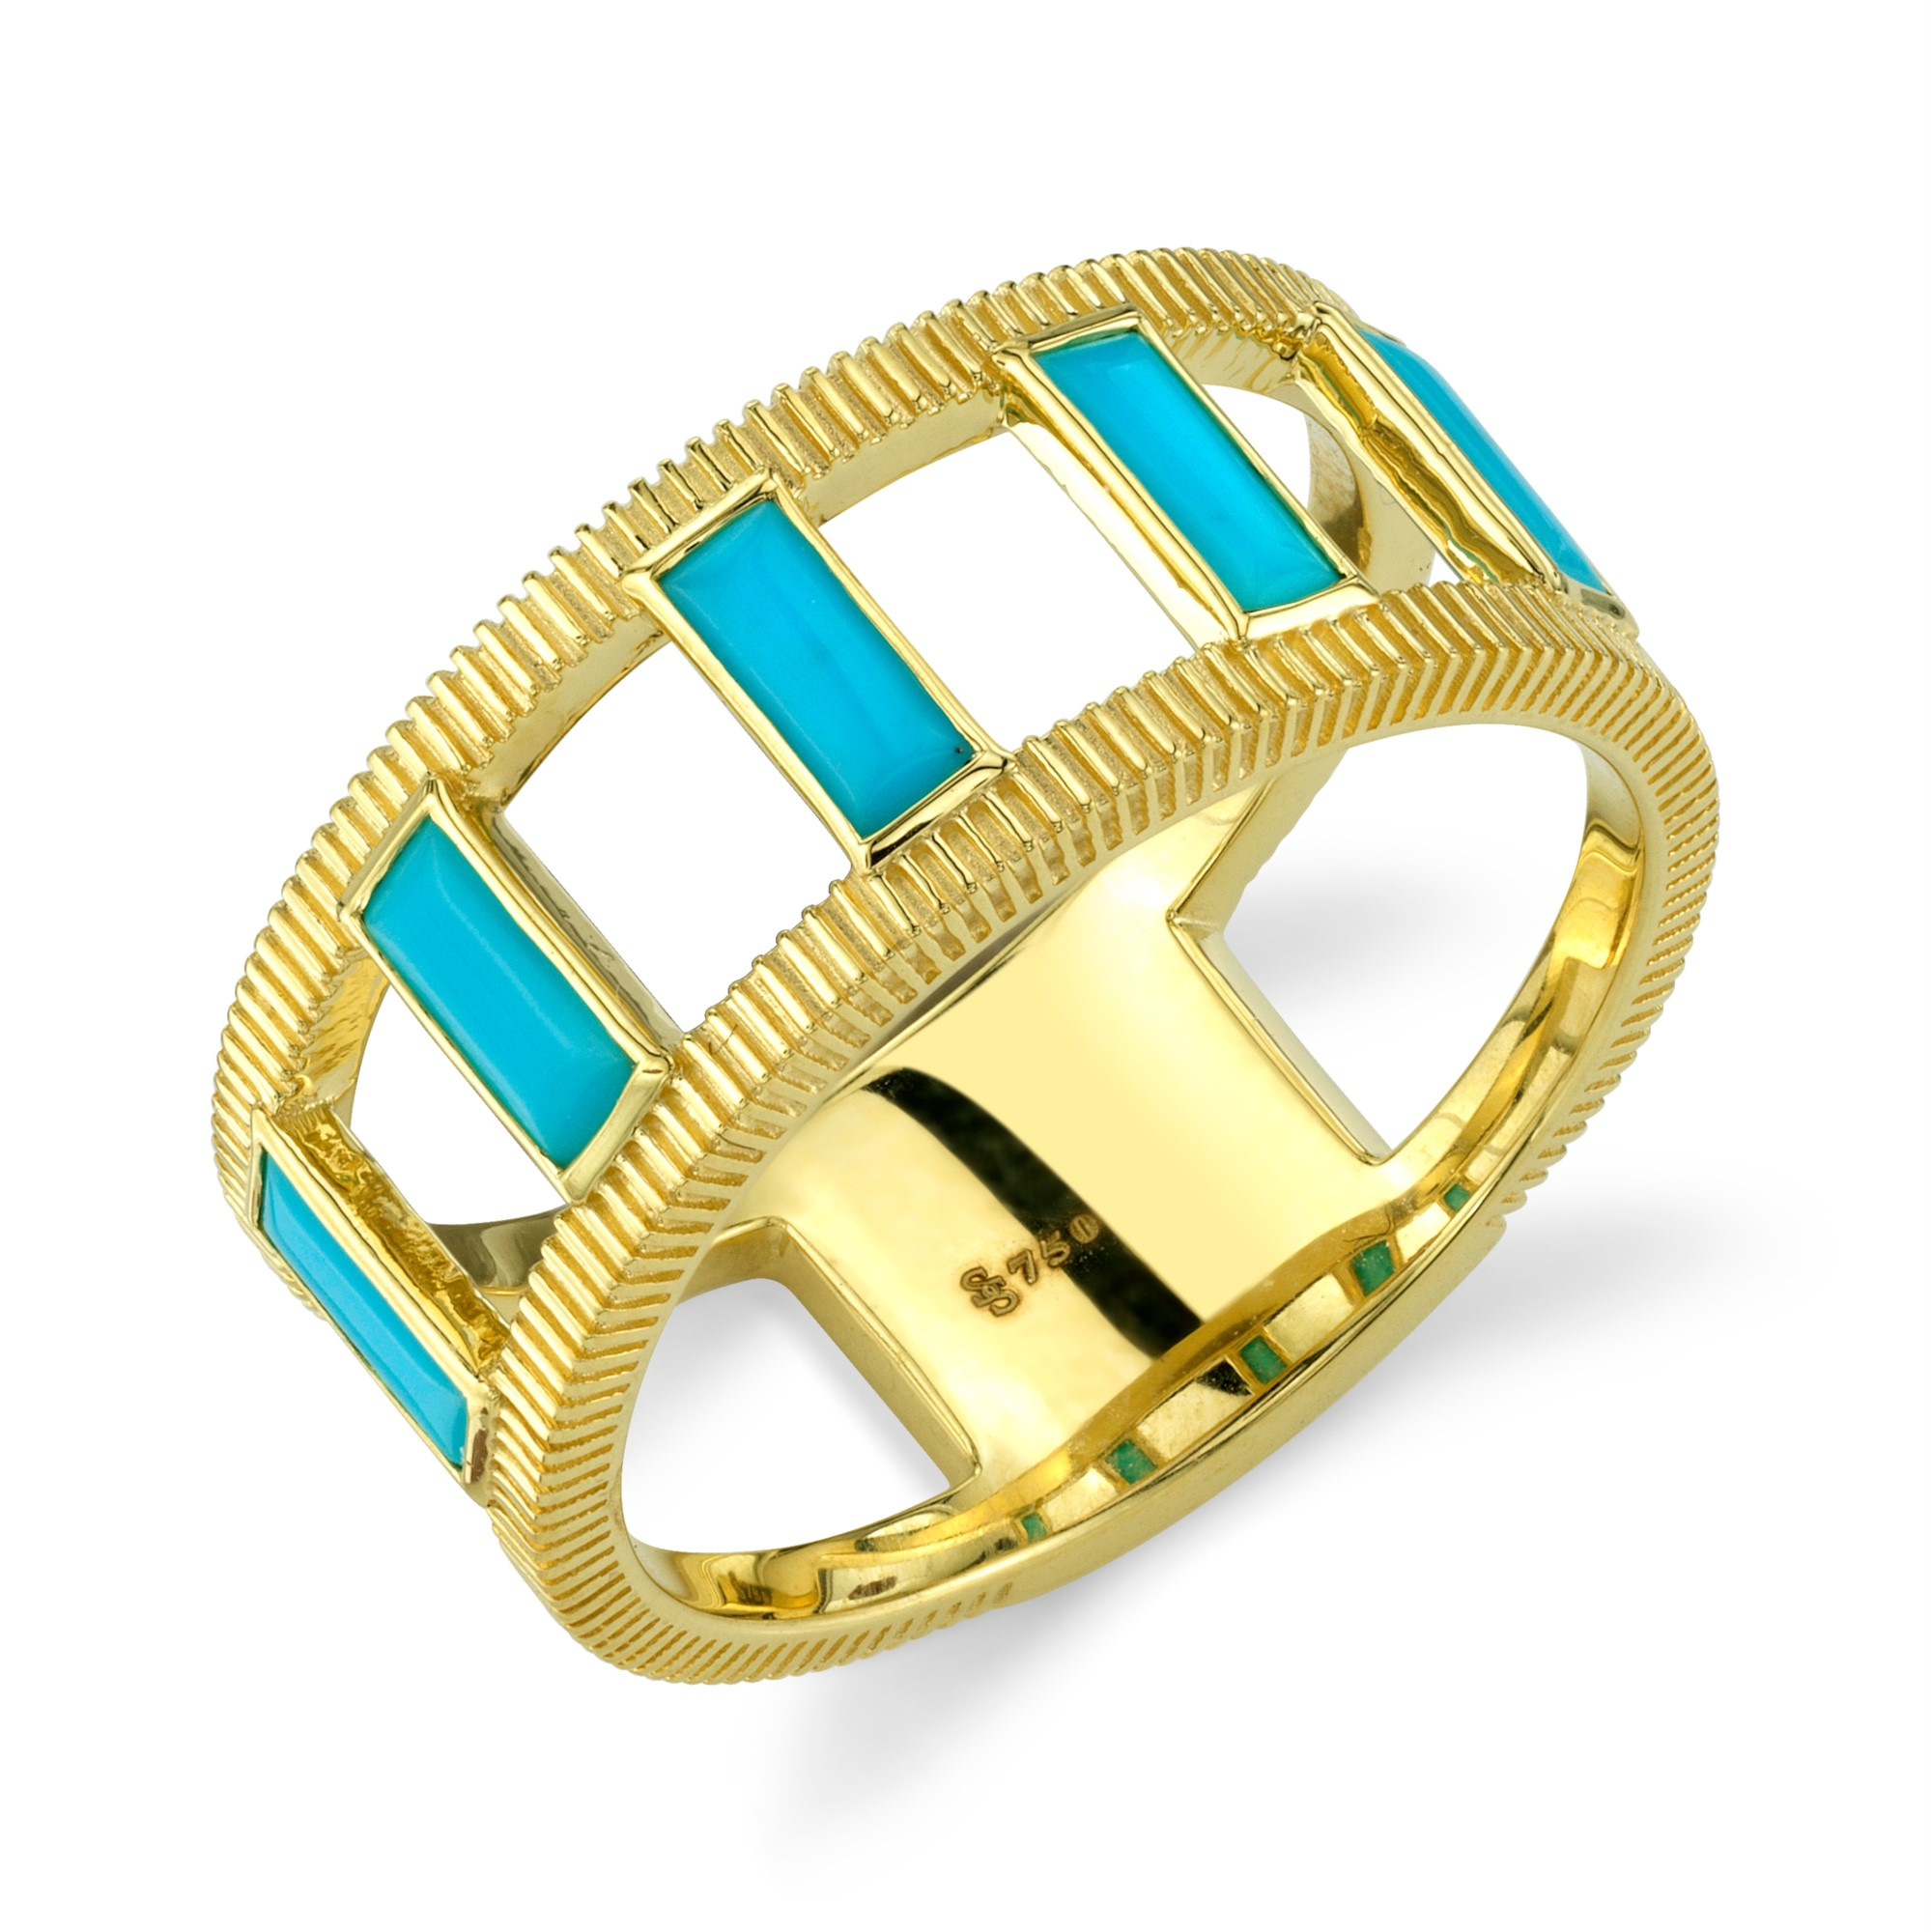 Sloane Street 18K Yellow Gold .50cts  Turquoise Gold Ring with Stones R015F-TQ-Y